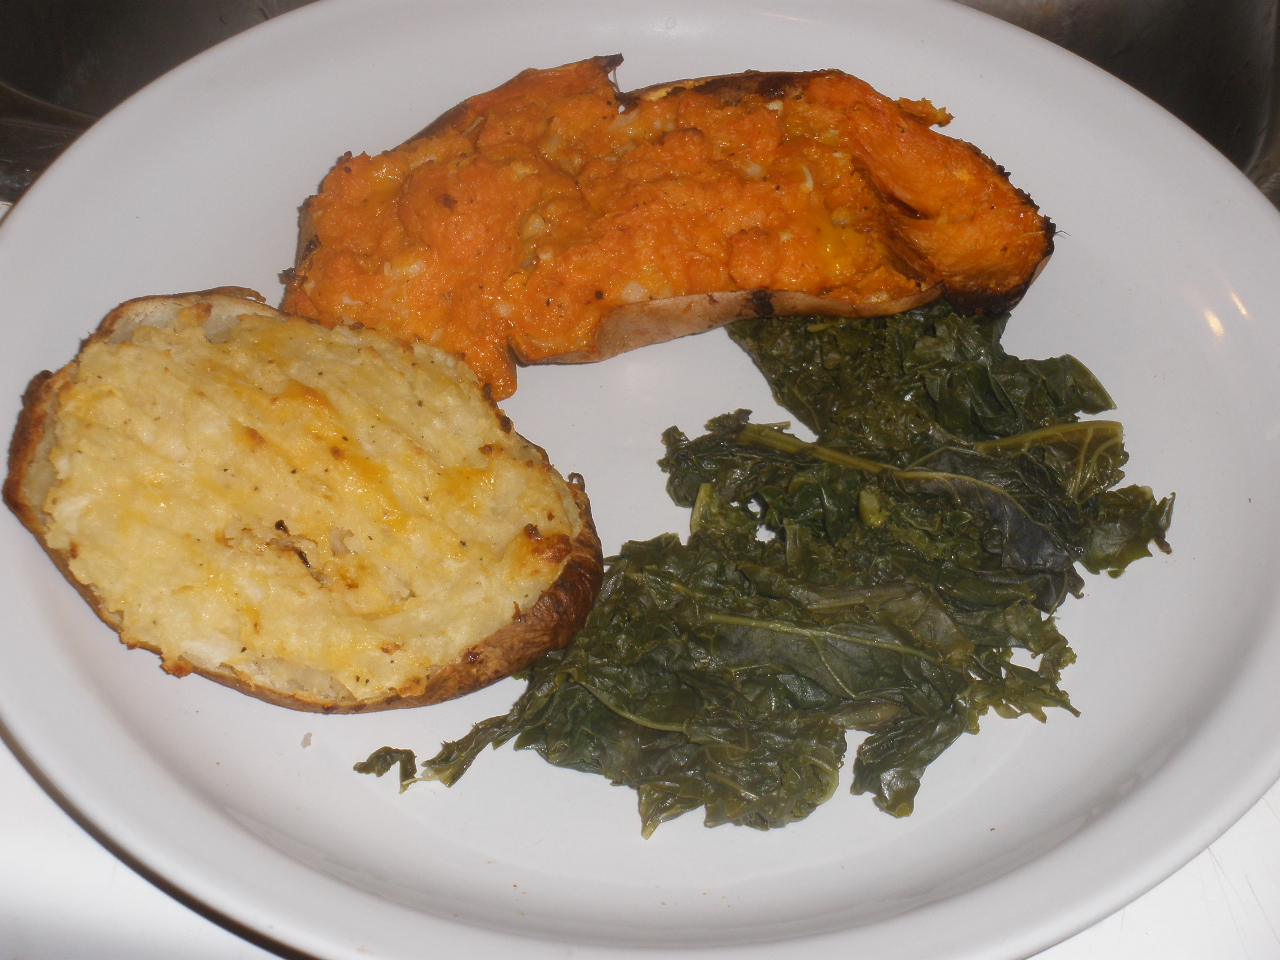 Baked potato and sweet potato, with kale